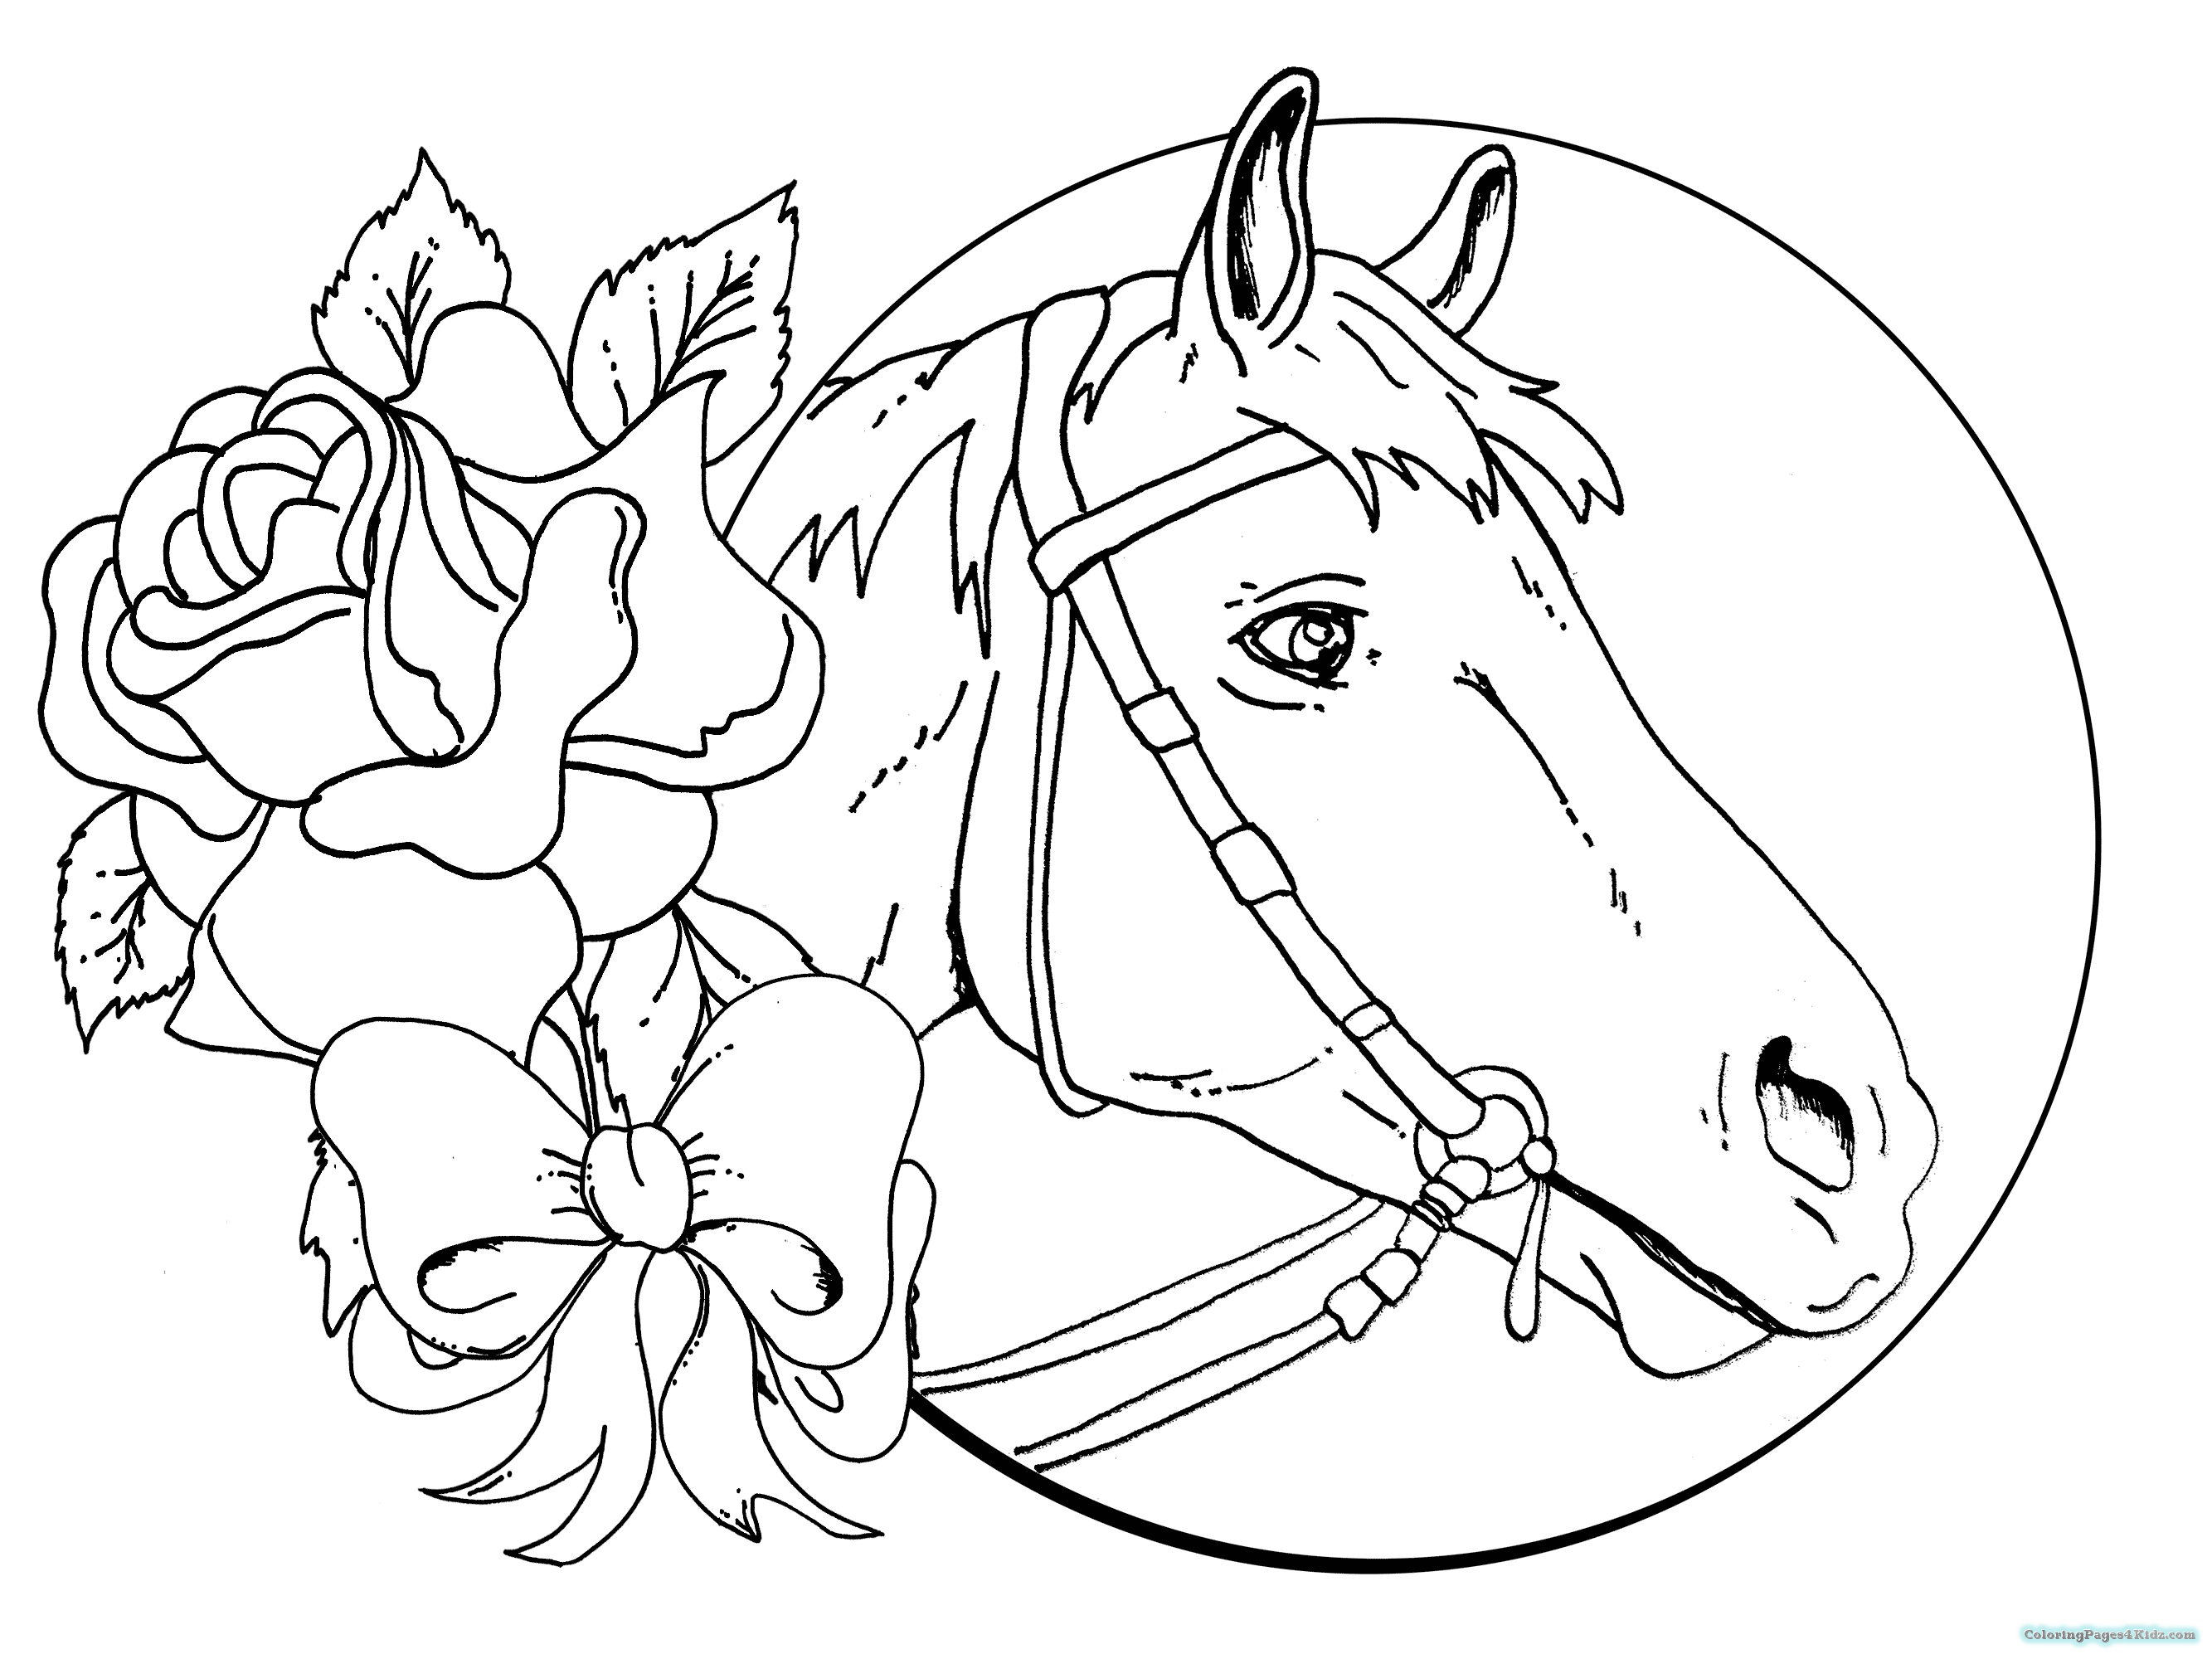 coloring pages of baby horses baby horse coloring page free printable coloring pages baby of pages horses coloring